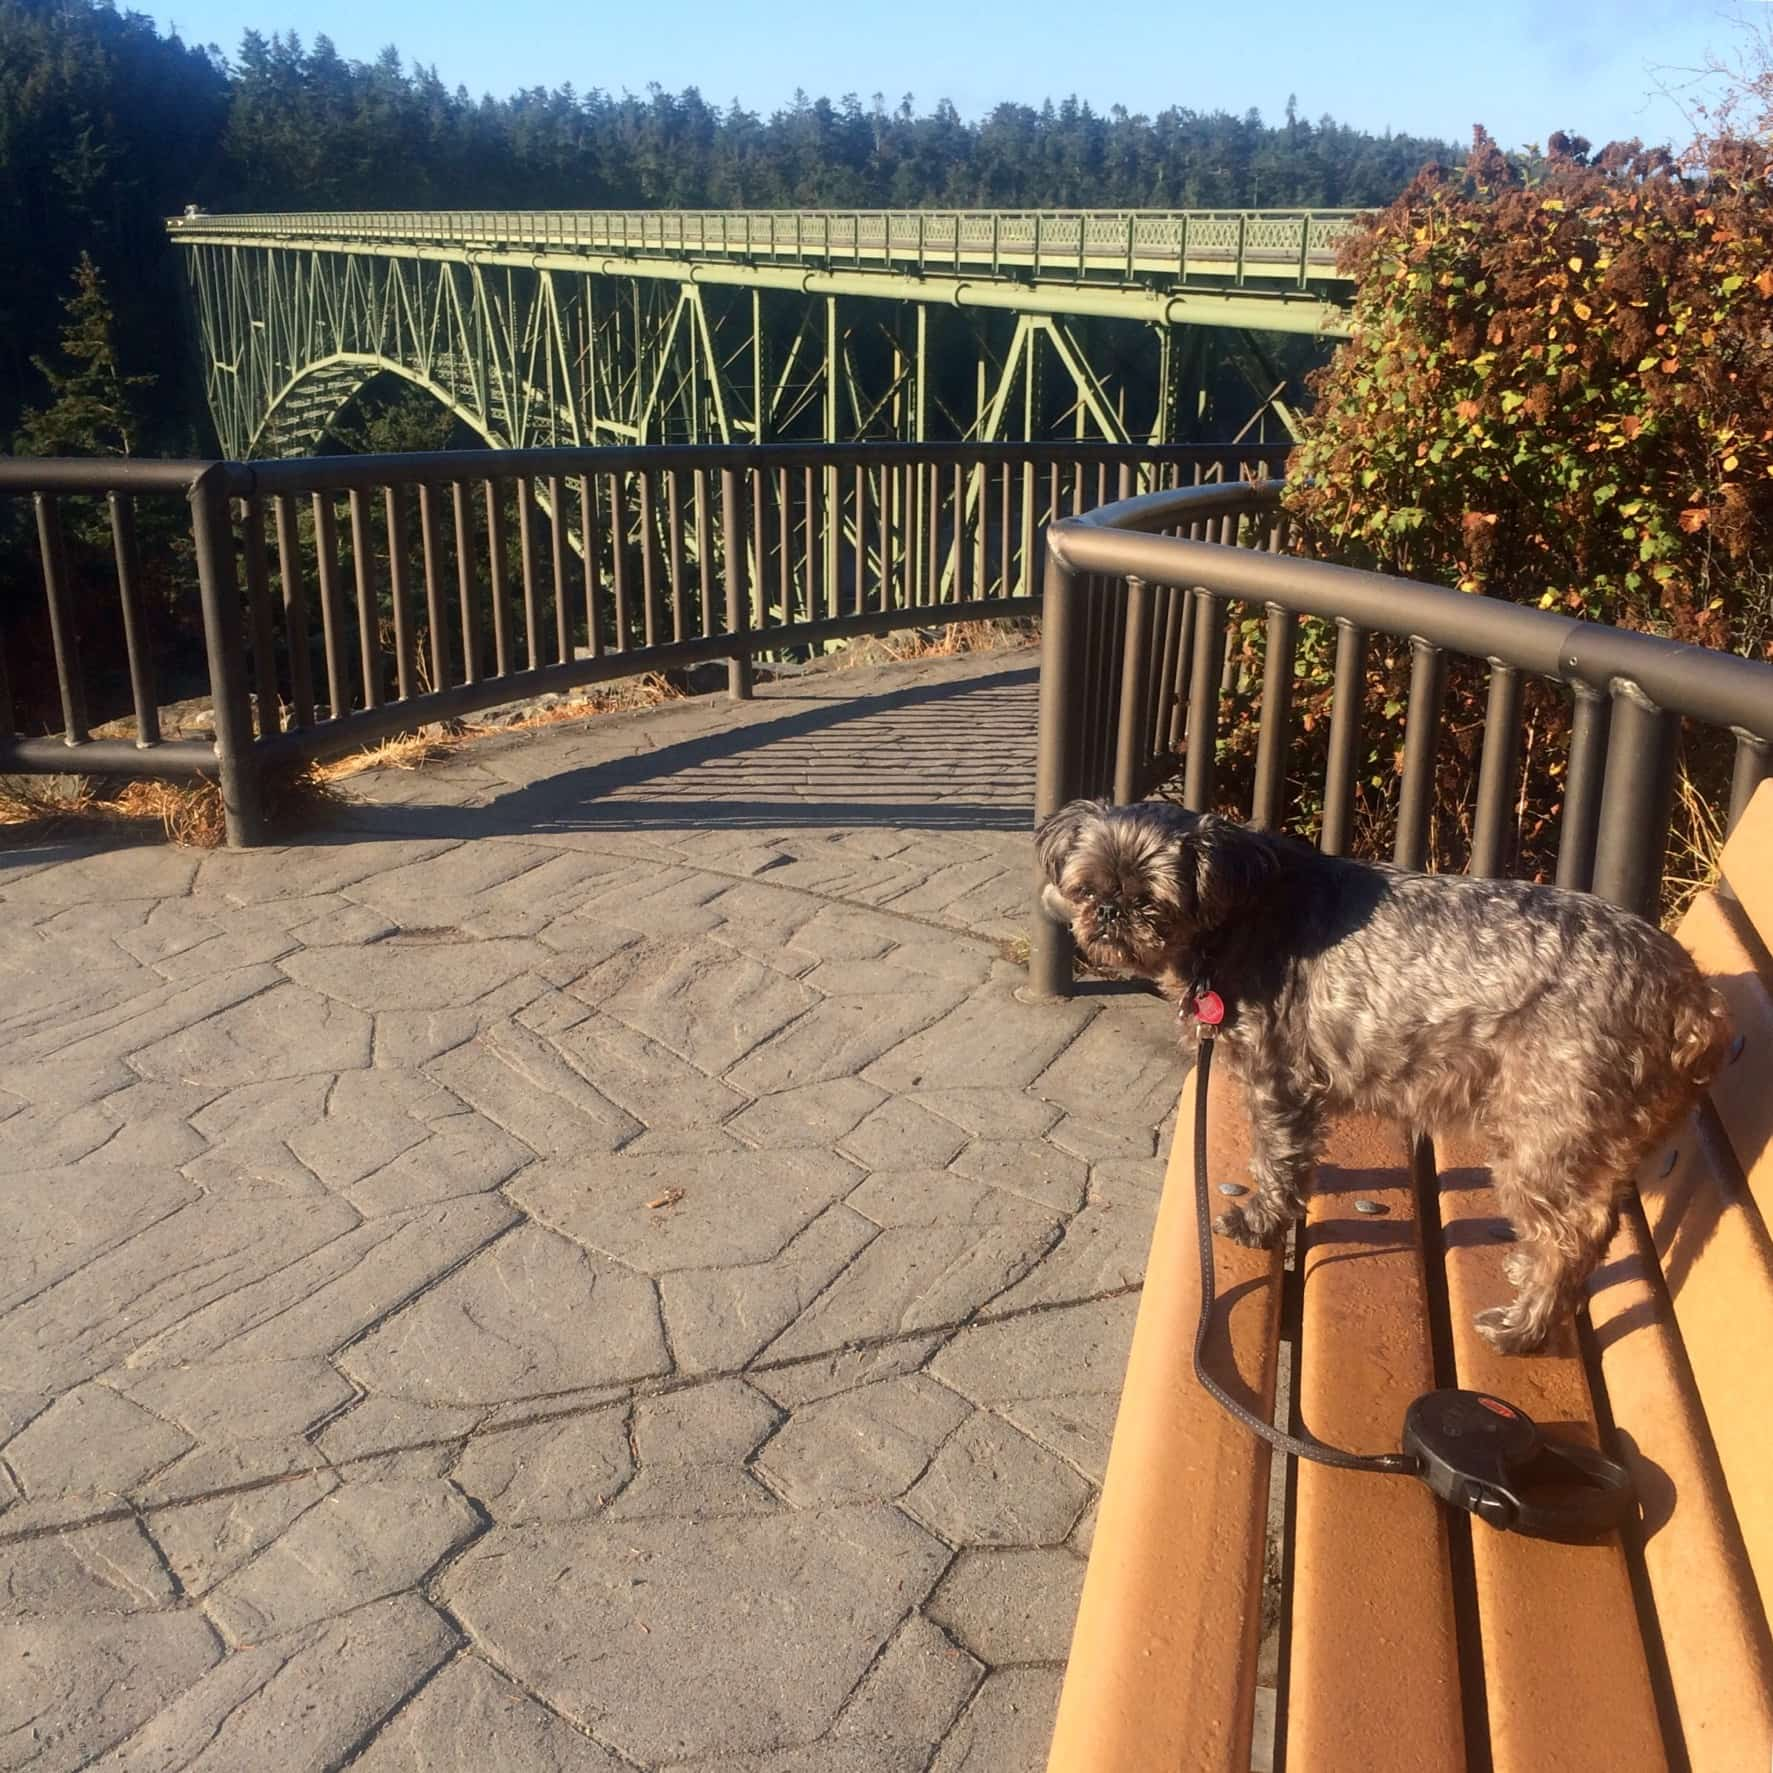 bd1d7dcfcb5e Exploring Dog Friendly Whidbey Island - 52 Perfect Days